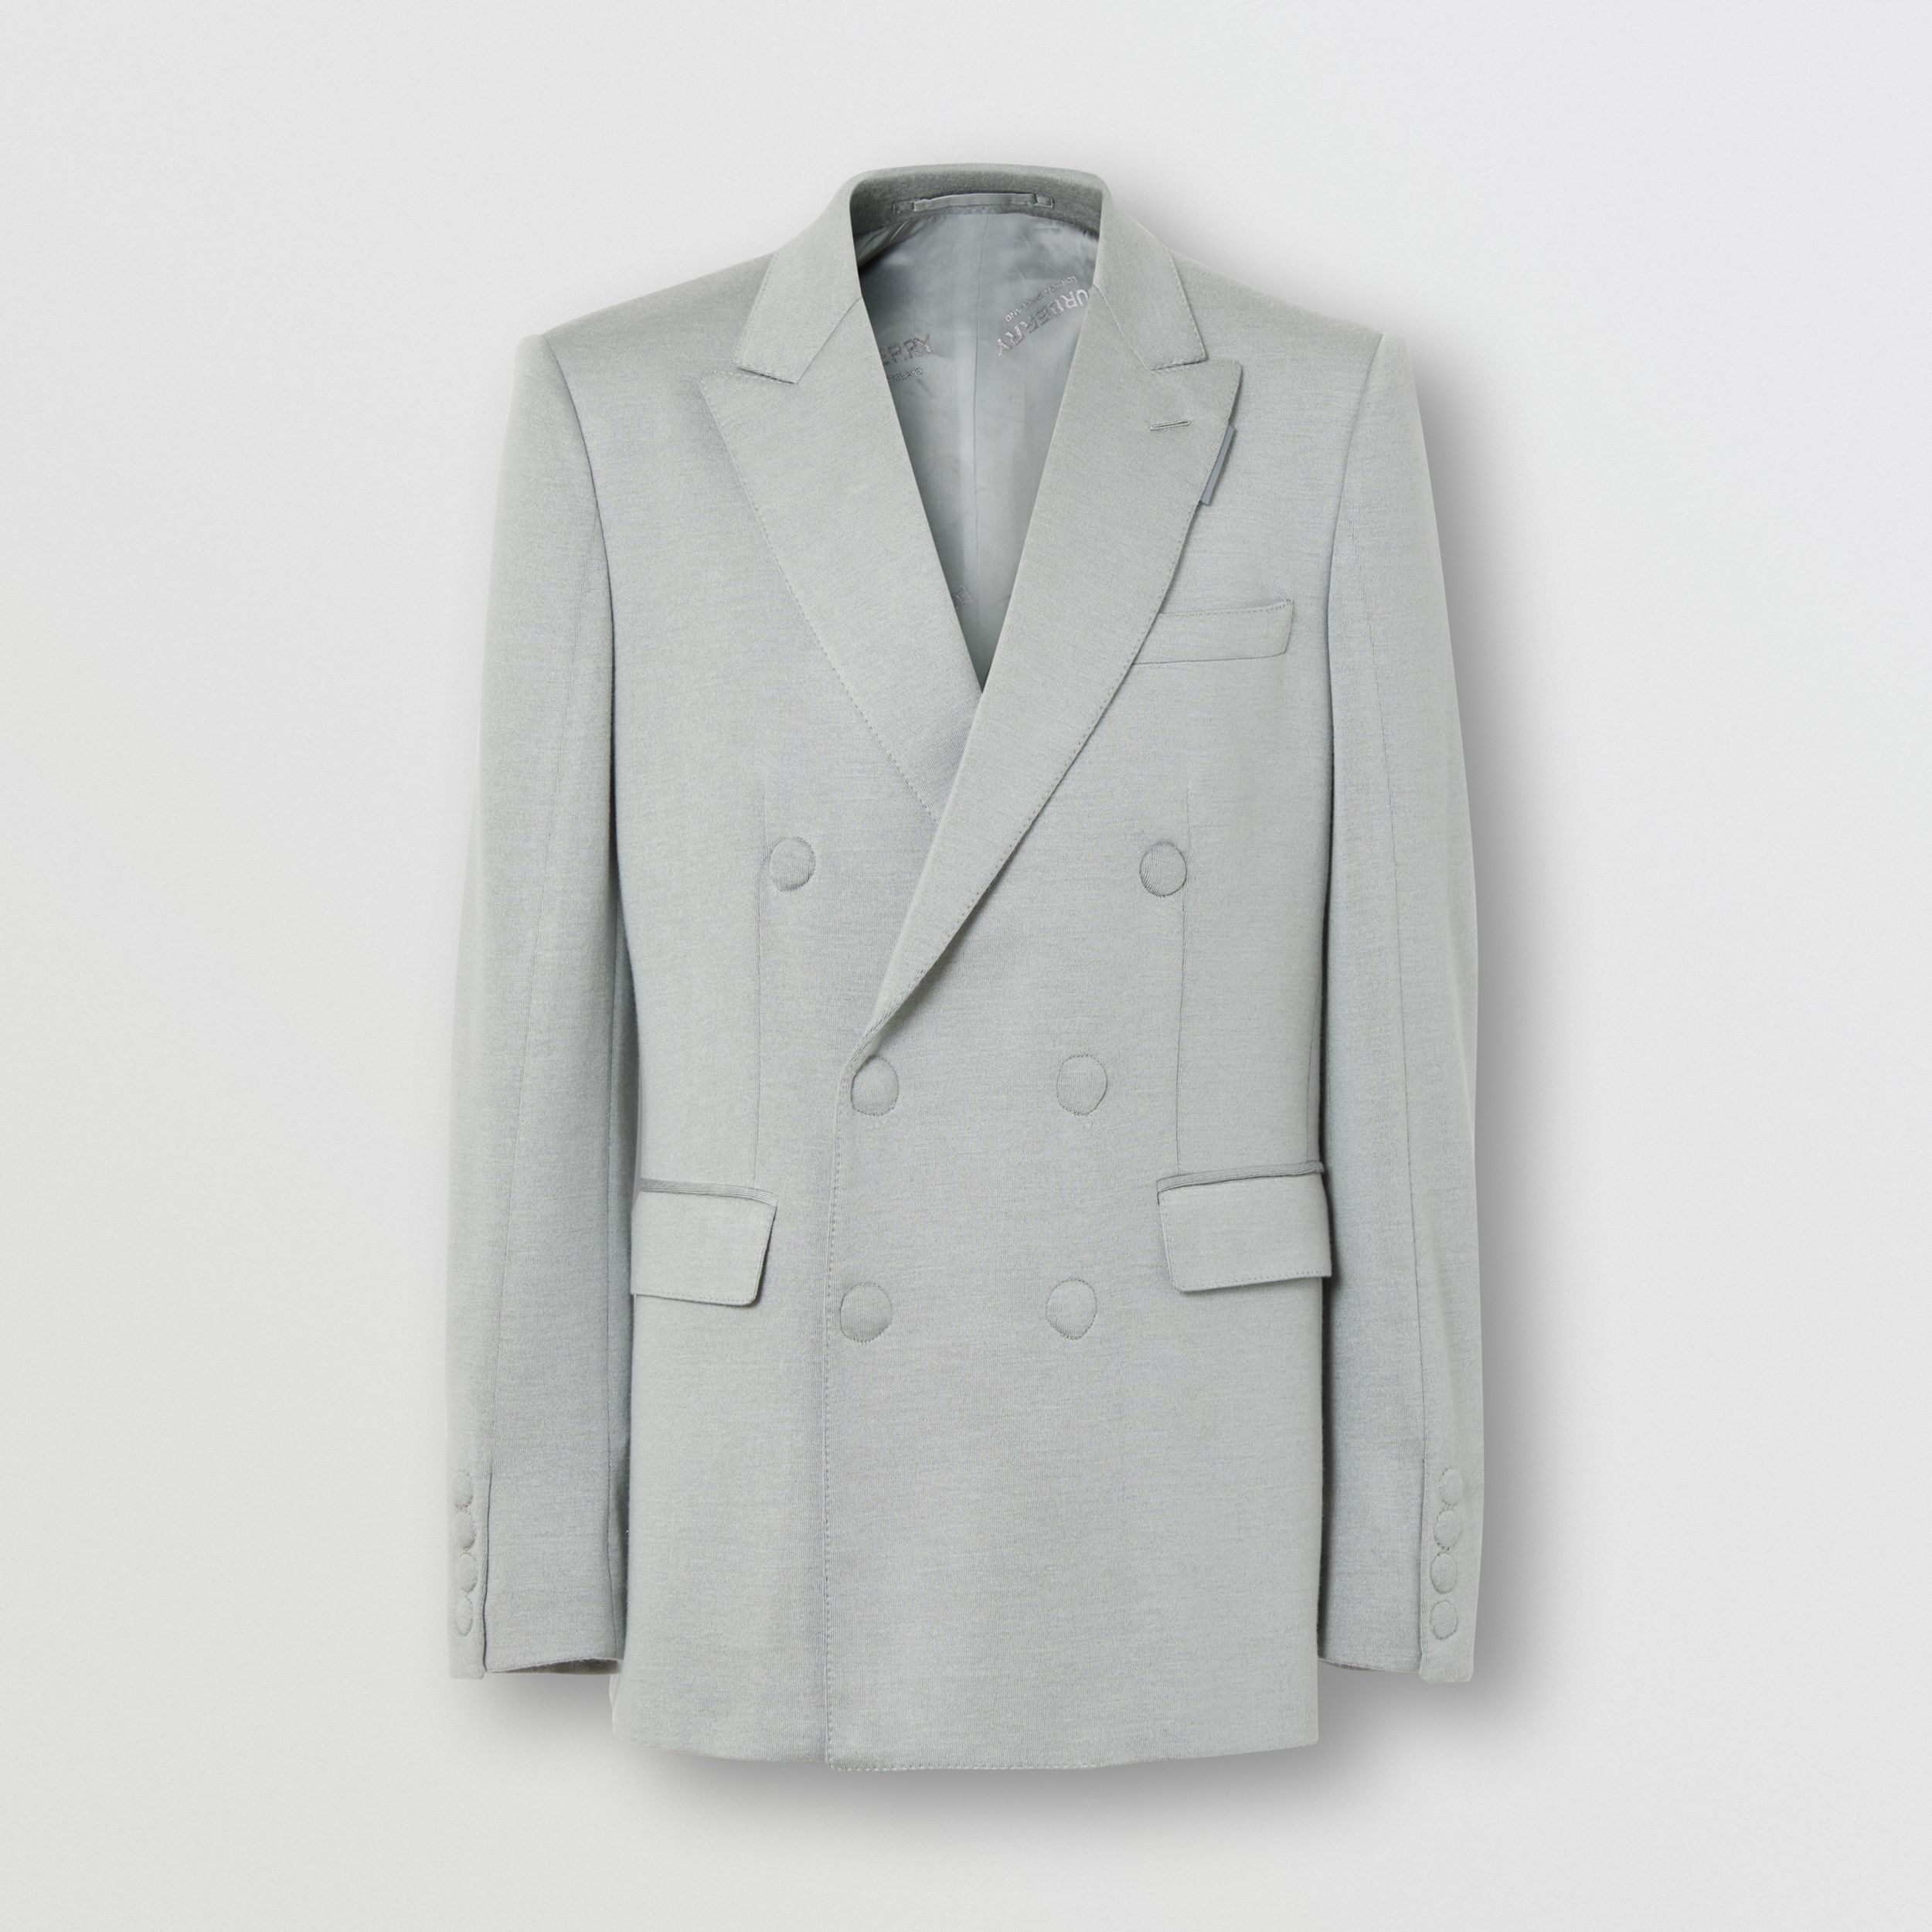 English Fit Cashmere Silk Jersey Double-breasted Jacket in Light Pebble Grey - Men | Burberry - 4